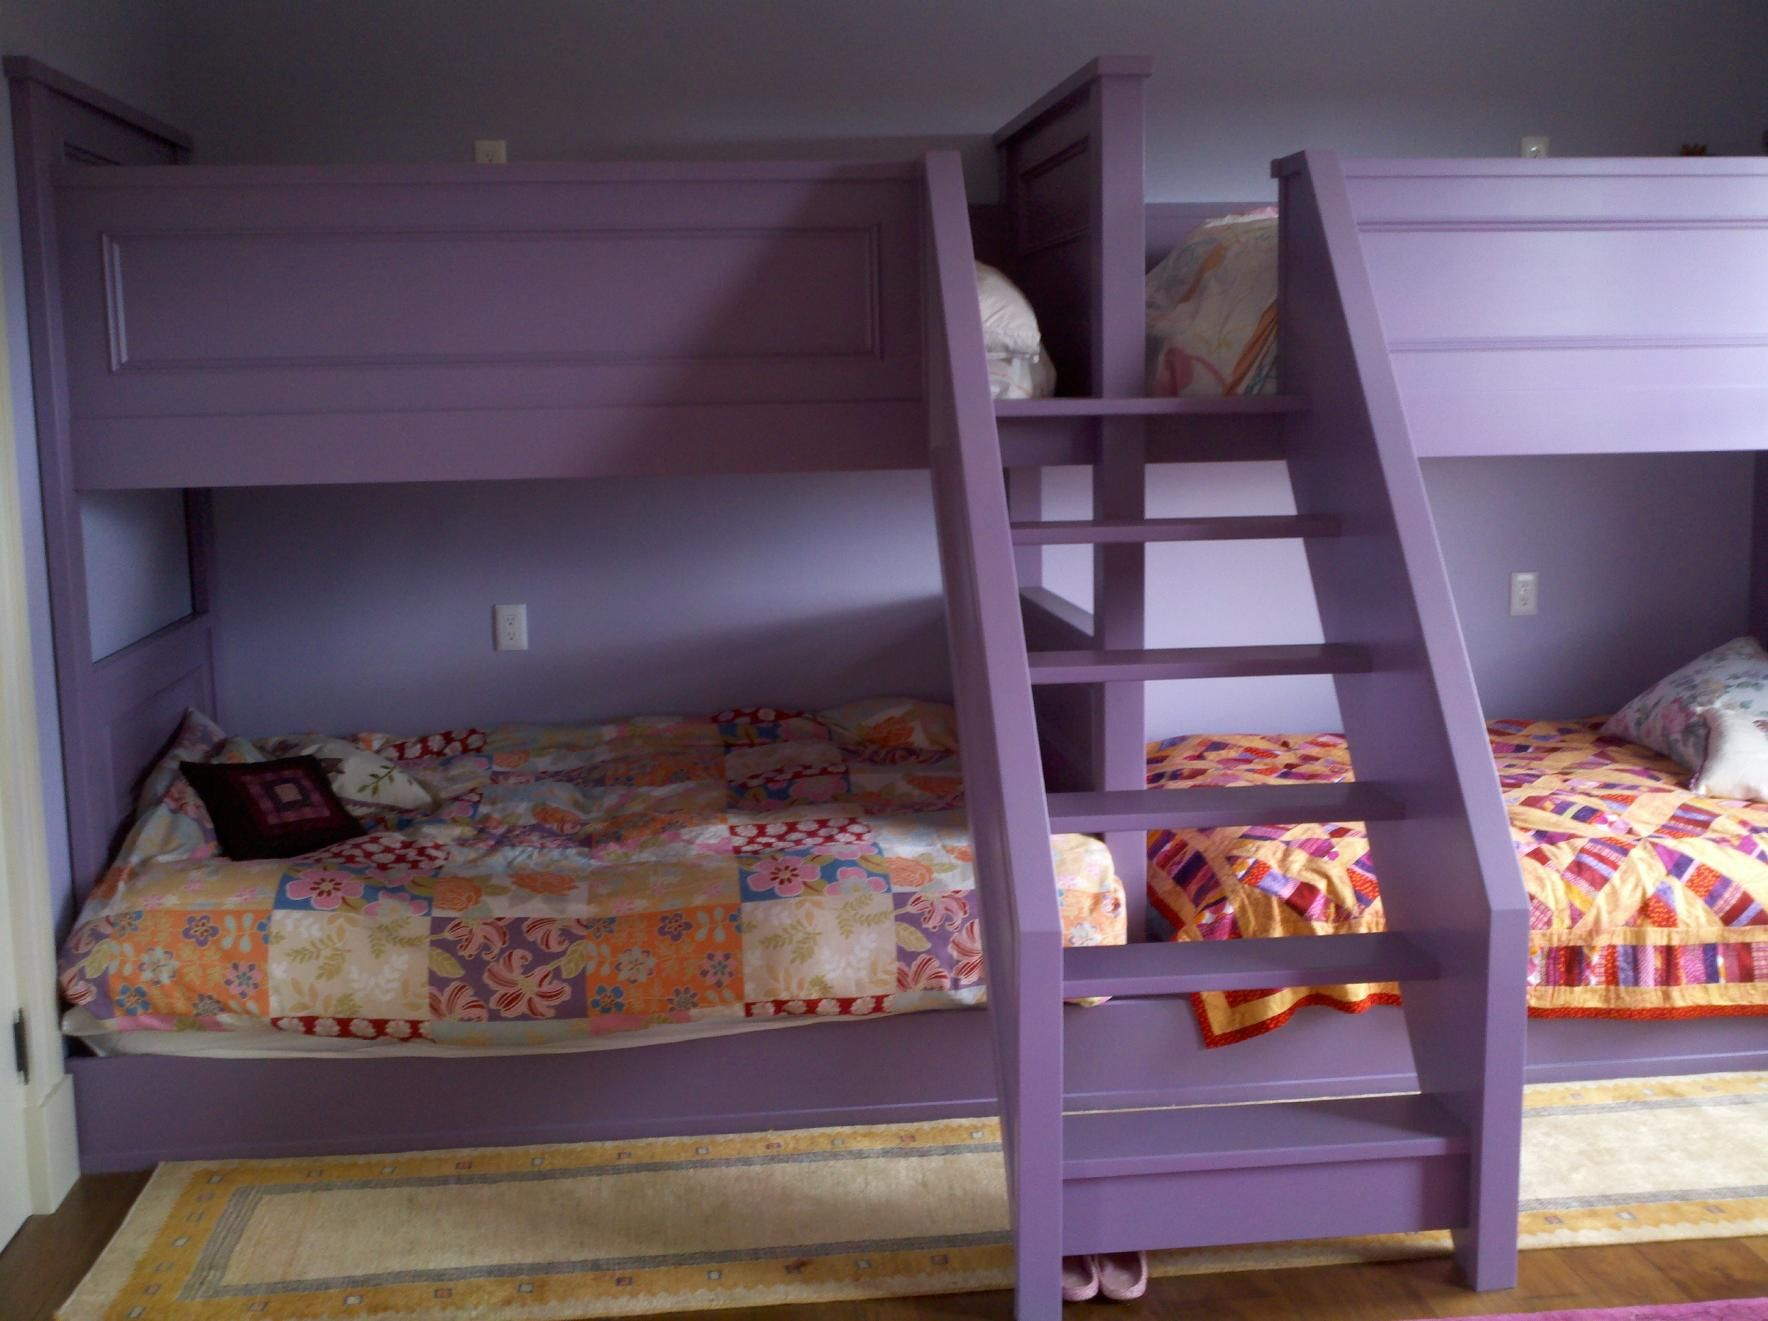 Pin Oleh Neby Di Bedroom Apartments Ideas Bunk Beds Bedroom Dan Bed